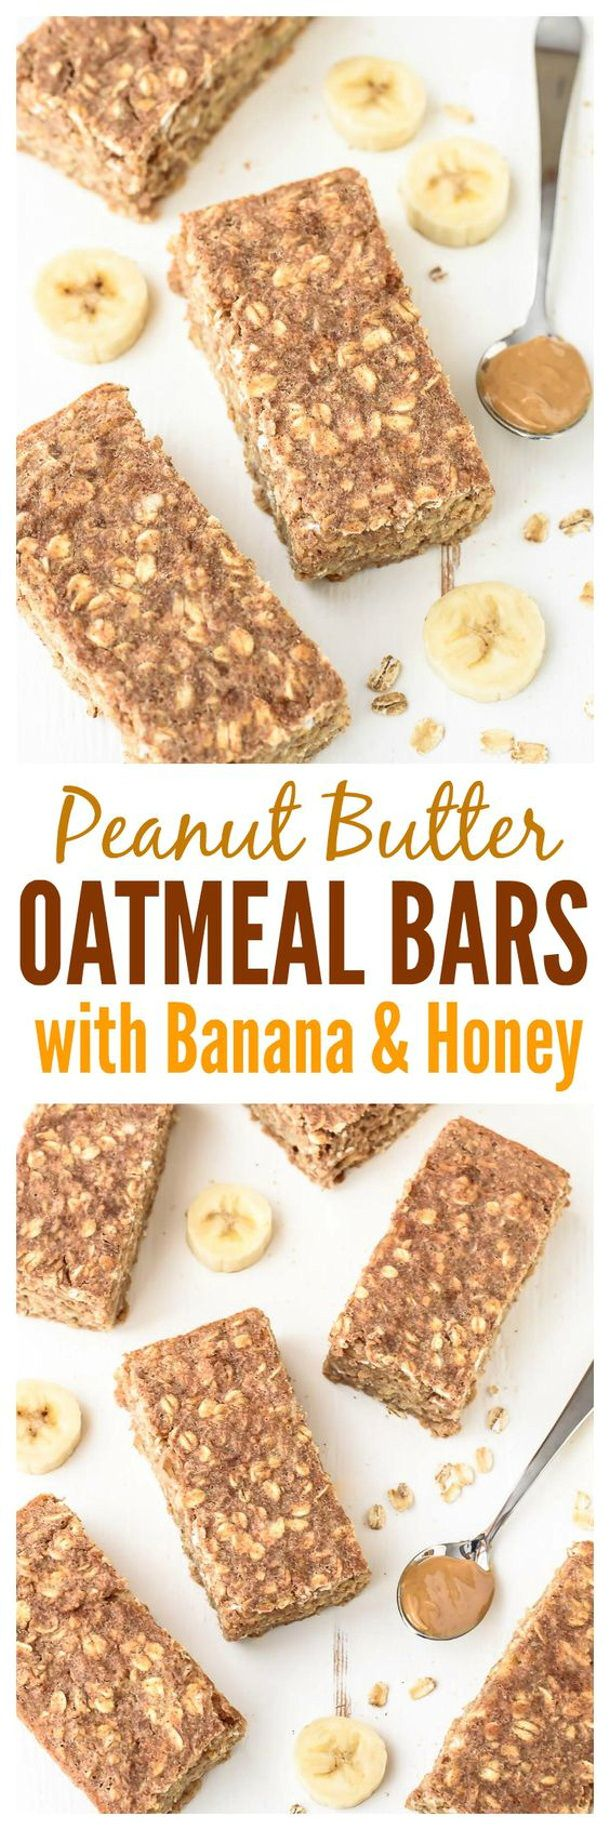 Healthy Snacks - Peanut Butter Oatmeal Bars with Banana and Honey Recipe via Well Plated by Erin #healthysnacks #healthytreats #healthyafterschooltreats #healthyrecipes #healthyfood #healthy #healthydesserts